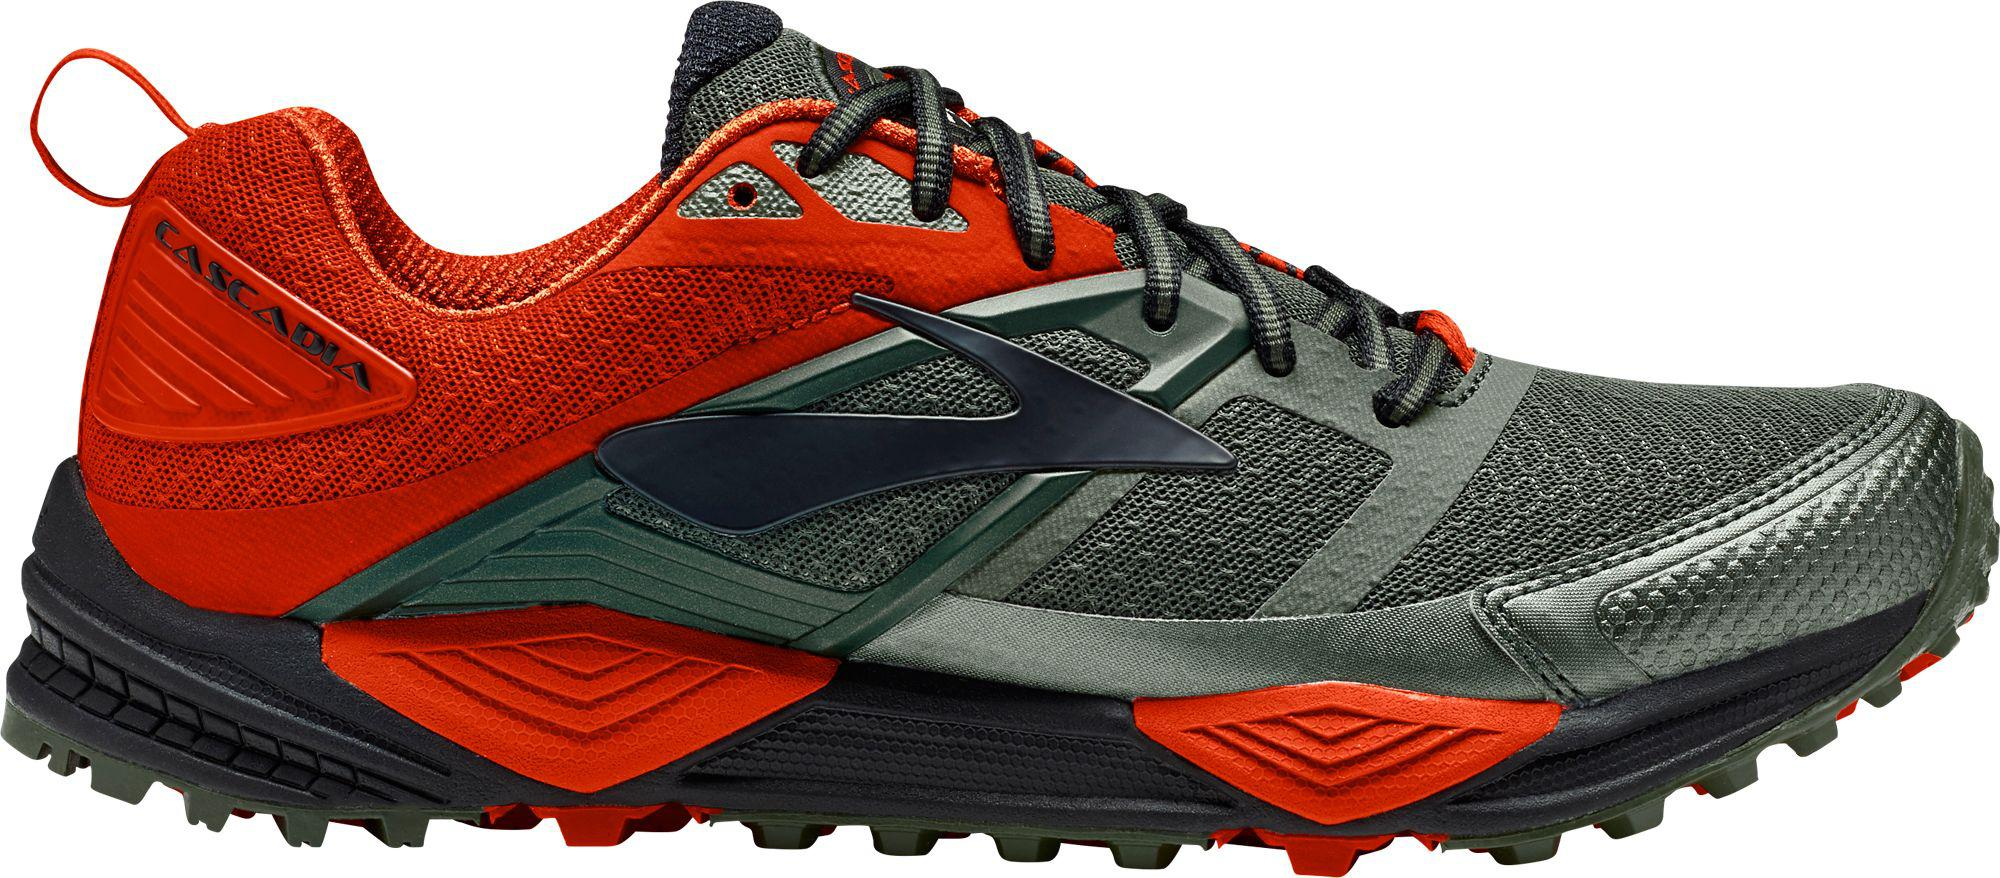 840dd9f1d7963 Lyst - Brooks Cascadia 12 Trail Running Shoes in Green for Men